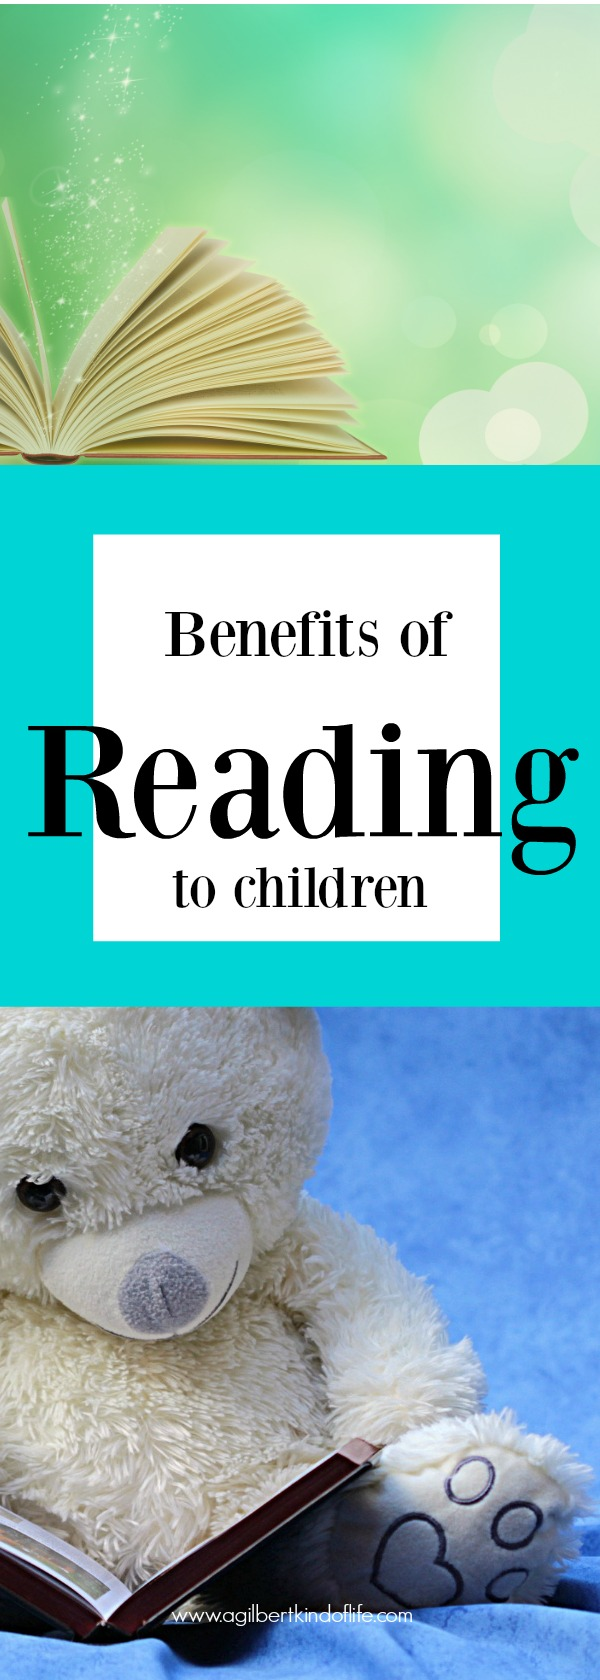 Science and parents have known for years that reading aloud to children offers many benefits - here are just a few of them.